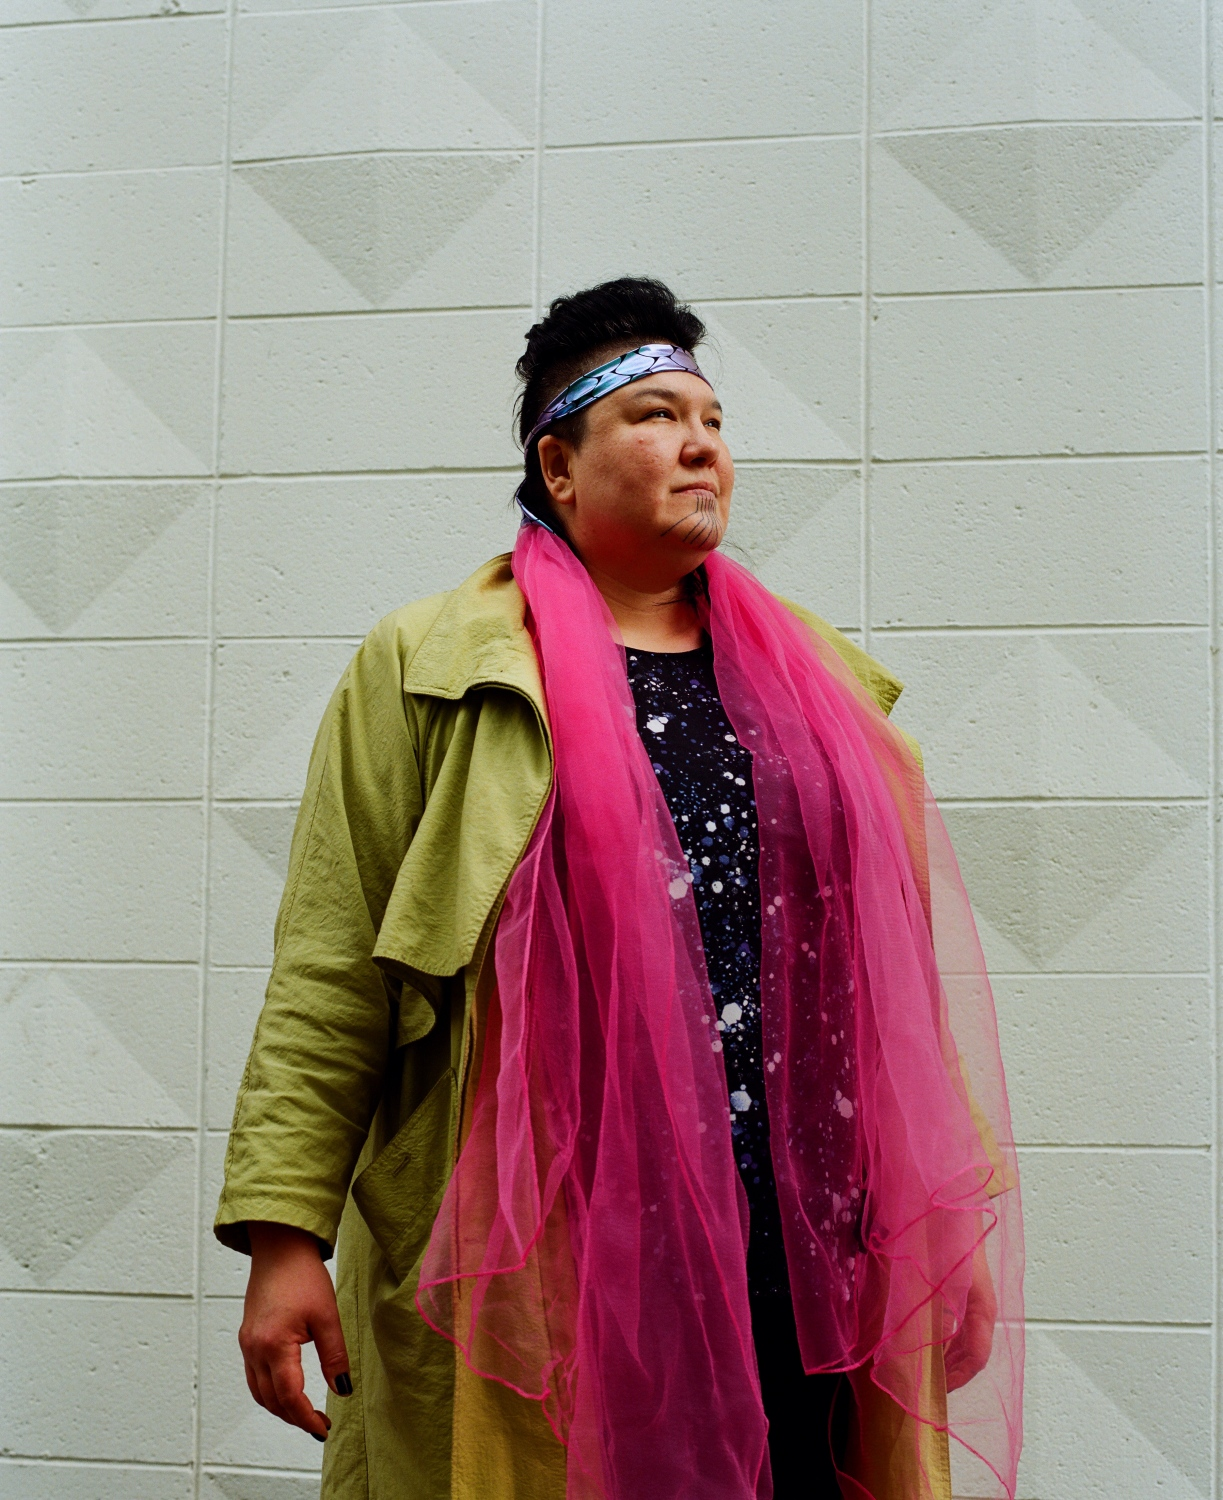 "Allison Akootchook Warden, an Iñupiaq hip hop artist and performance artist also known as AKU-MATU, outside of her home in Anchorage, Alaska. Warden had her chin tattooed for the first time when she turned 40, and she chose a design done with color. ""I wanted to do color because I thought that if my great-grandmother had access to color, she would have chosen color,"" she says.  Warden had thought about having her chin tattooed for a while, she says, but decided to do it after her mother had hers done to mark turning 70.  ""My mom was marking that she was turning 70. And for her to get that done because she was a Presbyterian Minister sent a big signal I felt. Because she was trained in the church and she has a Masters Degree in Divinity, and she is a big leader in church. So for her to do that and show it so visibly, it was a big push for others I think—to say that it's not something that is conflicting with Christianity. That it's okay to have that part of our culture and it's not something to be ashamed of or to put away. I got mine done a year after that,"" she says. ""For me, it's a process of decolonization. We have the right to wear these tattoos. I feel like there's a strength in knowing who we are. There's intentional decolonization. Creating spaces to decolonize and decolonizing ourselves."""